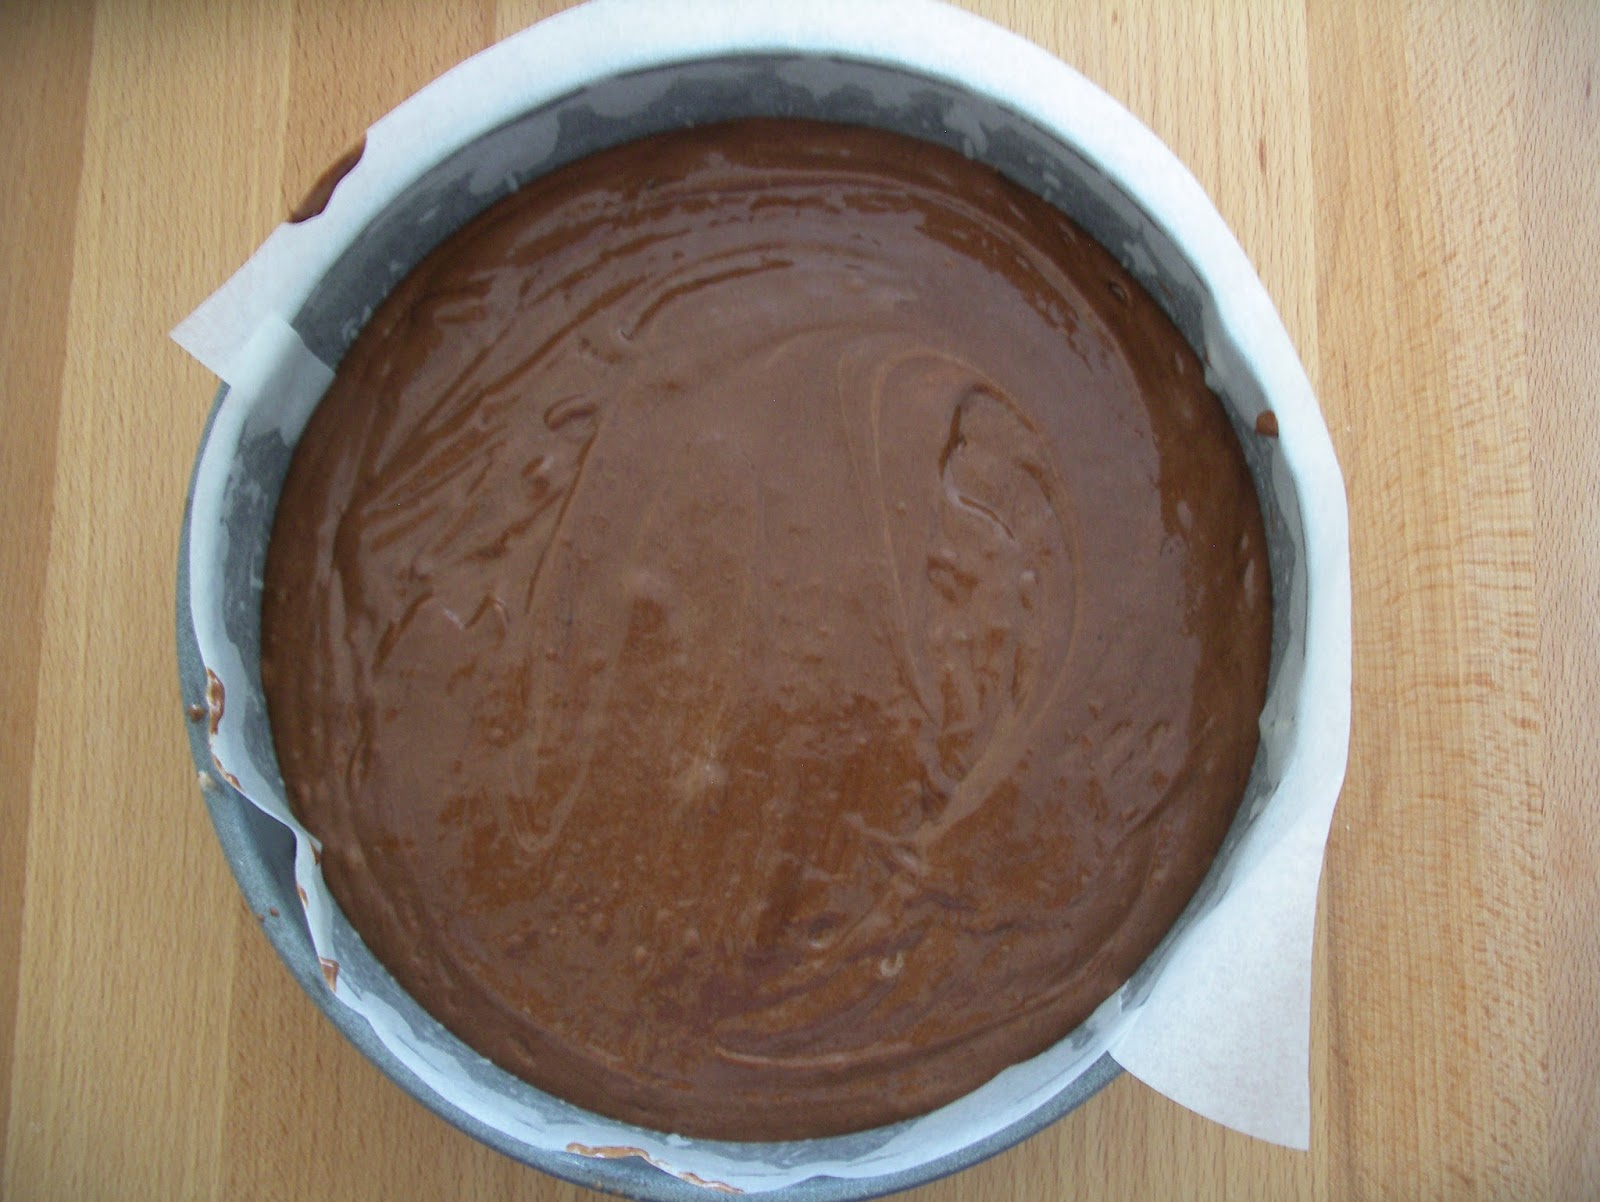 Tender chocolate cake (Torta tenerella ) - before baking